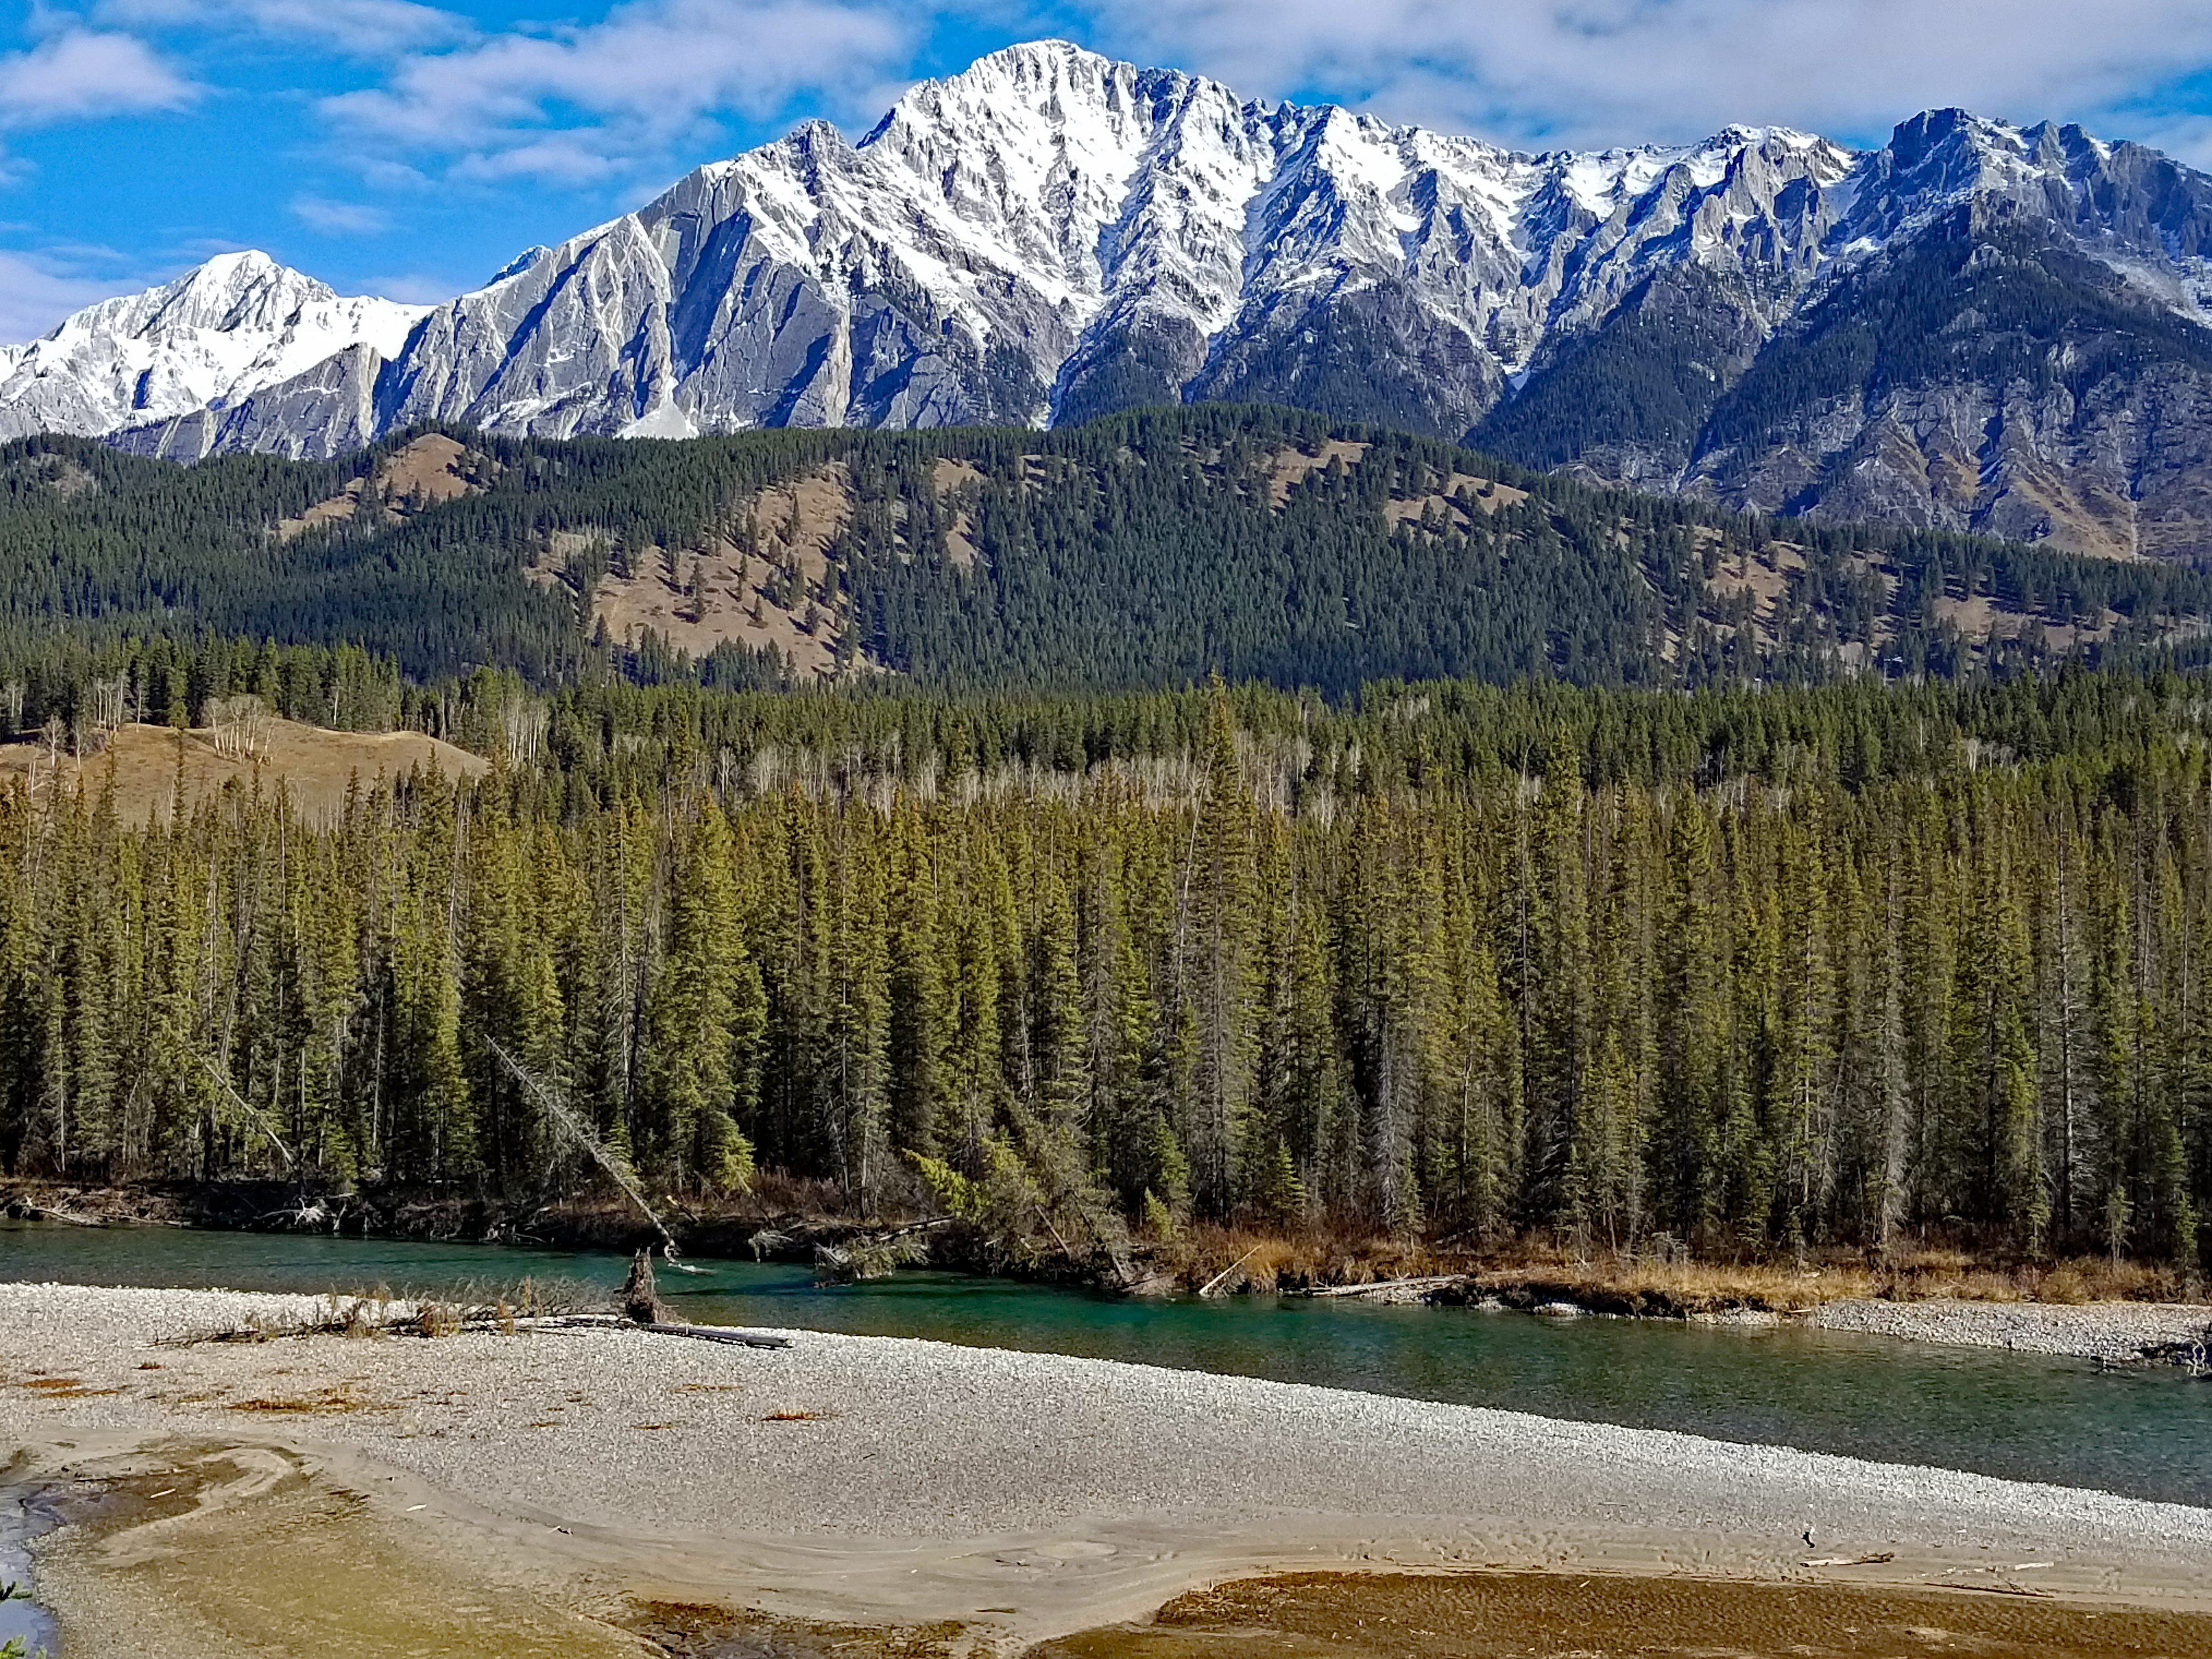 """<p>Banff National Park, AB</p><p class=""""lightbox-share""""><span>Share: </span><a class=""""lightbox-fb"""" href=""""javascript:void(0);"""">Facebook</a><a class=""""lightbox-twit"""" href=""""https://twitter.com/home?status=I%20voted%20for%20Mount%20Ishbel%20in%20the%20Cornice%20Calendar%20Contest.%20Choose%20your%20favourite%206%20photos:%20http://ow.ly/yCSmZ"""" target=""""_blank"""">Twitter</a></p><input type=hidden class=voteid value=1908 />"""